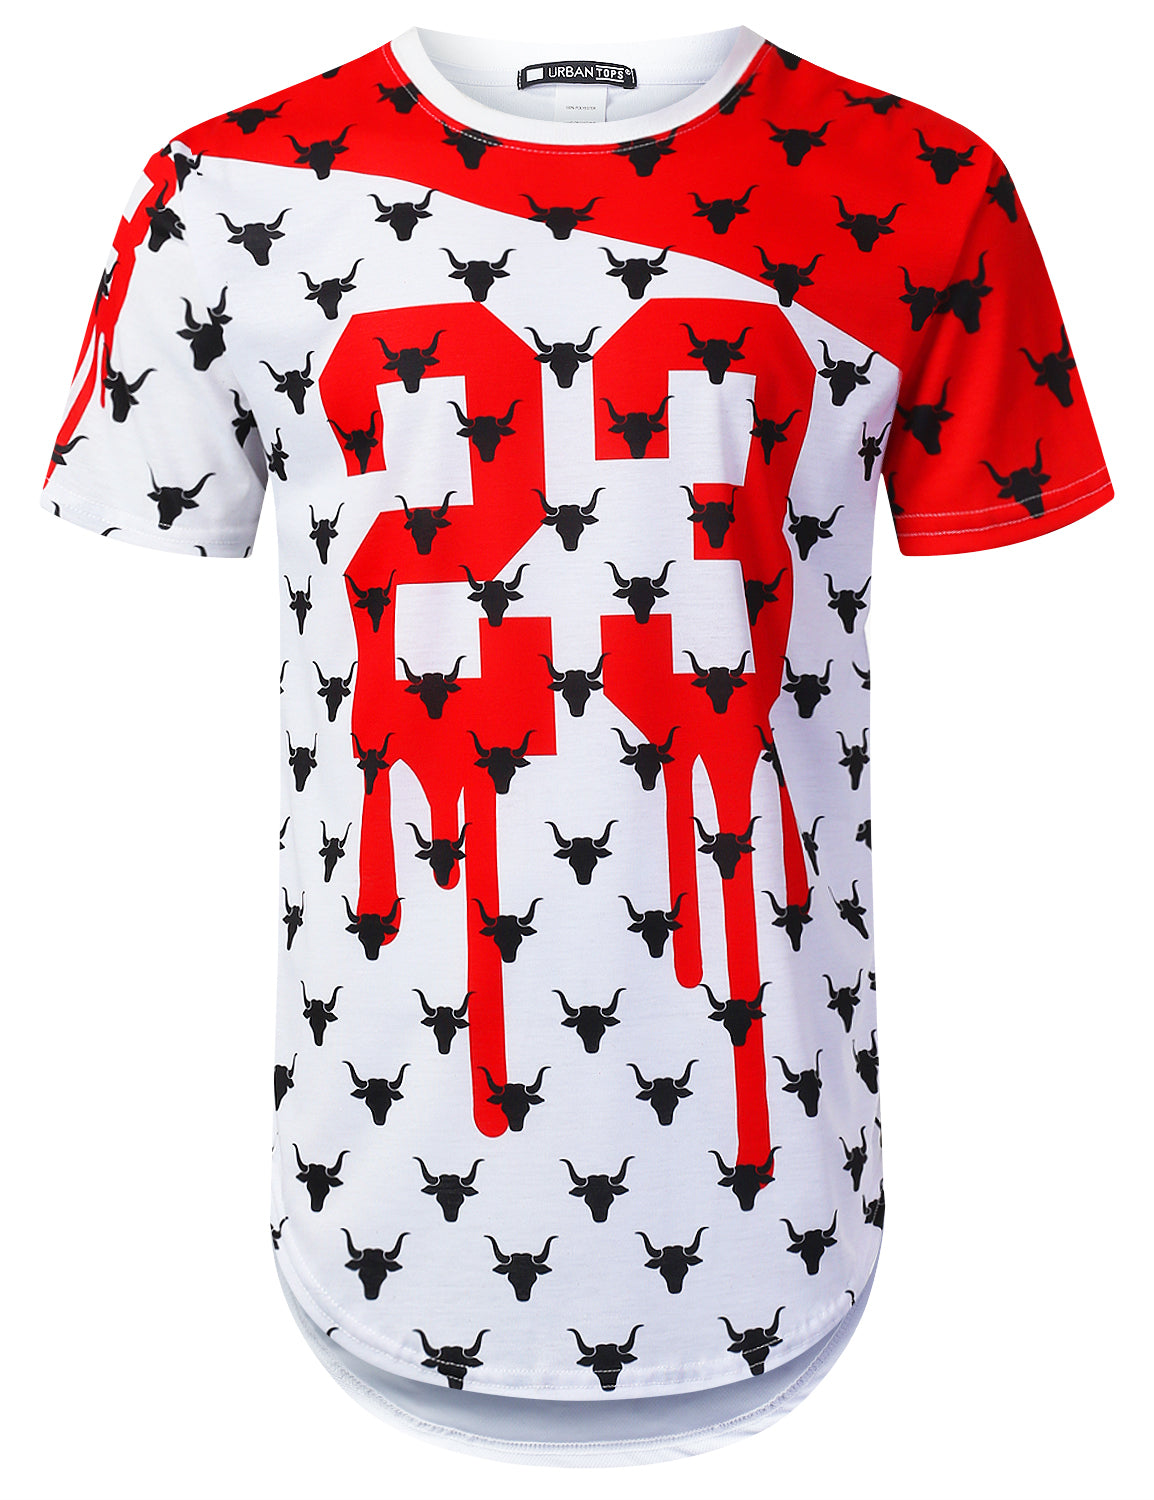 WHITE Patterned Bulls Longline T-shirt - URBANCREWS